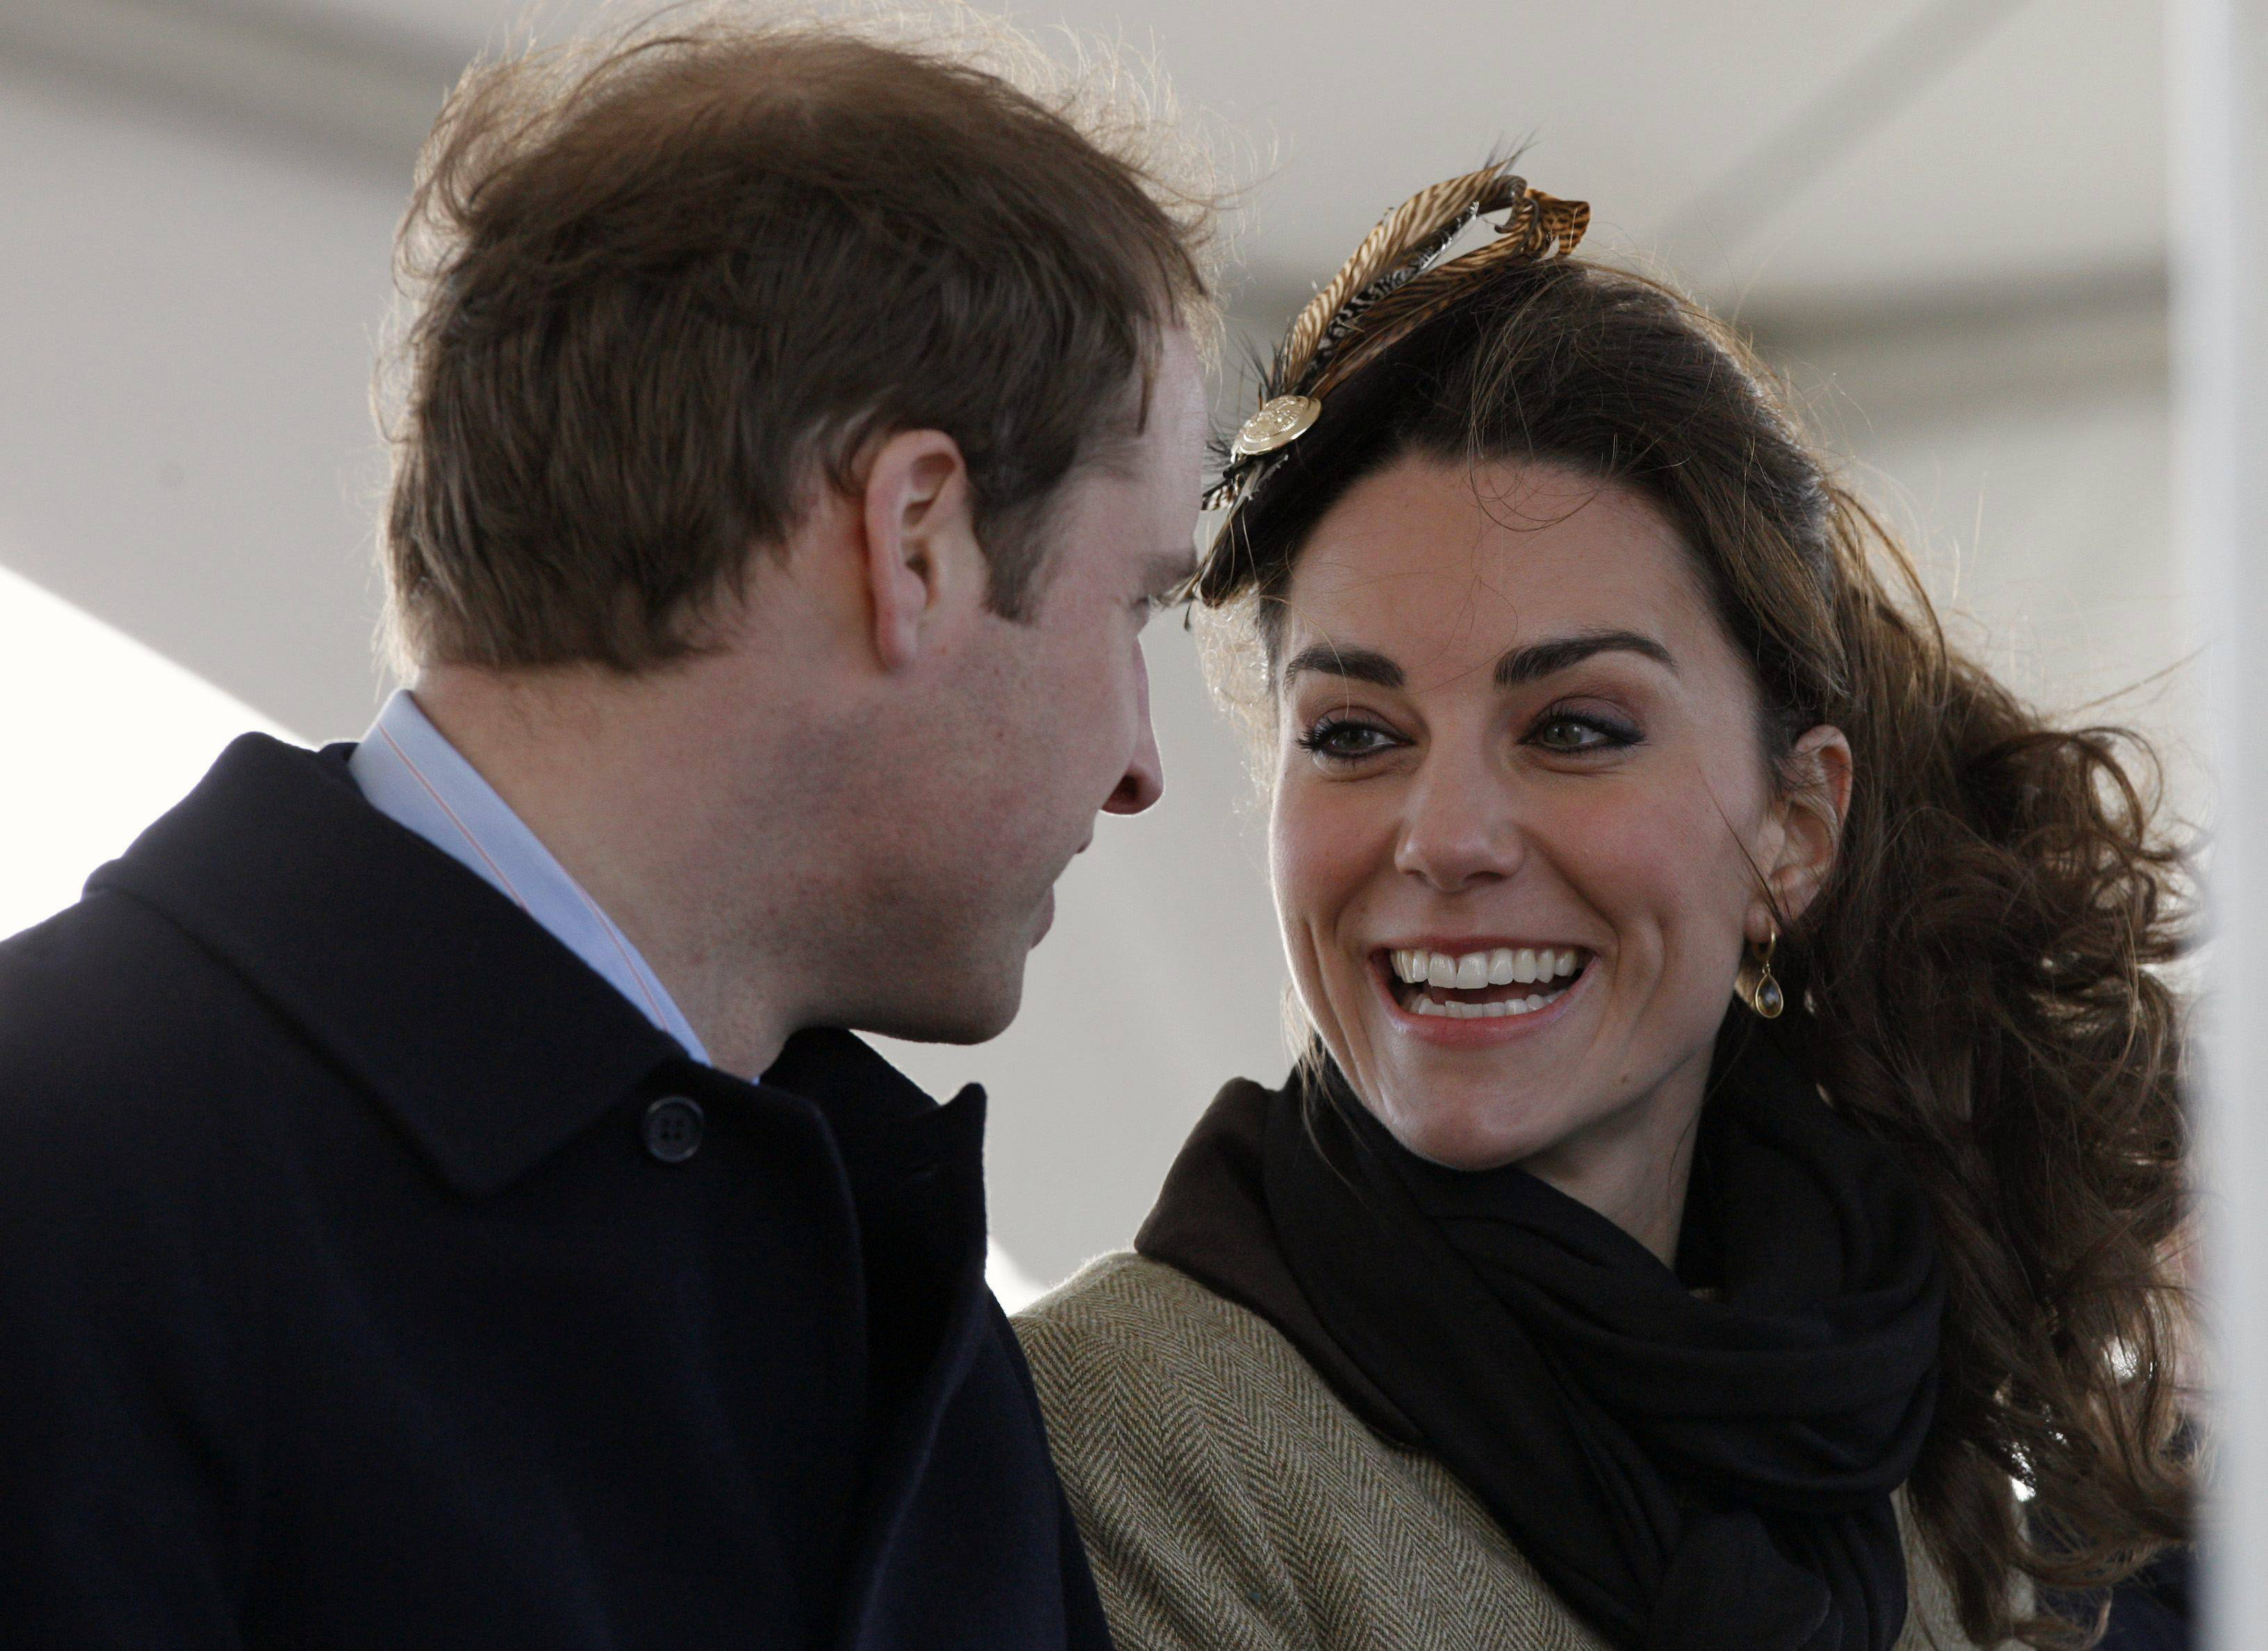 Britain's Prince William and his fiance Kate Middleton react following a naming ceremony and Service dedication for the Royal National Lifeboat Institution's new Atlantic 85 Lifeboat, at Trearddur Bay Lifeboat Station in Anglesey, Wales, Thursday.